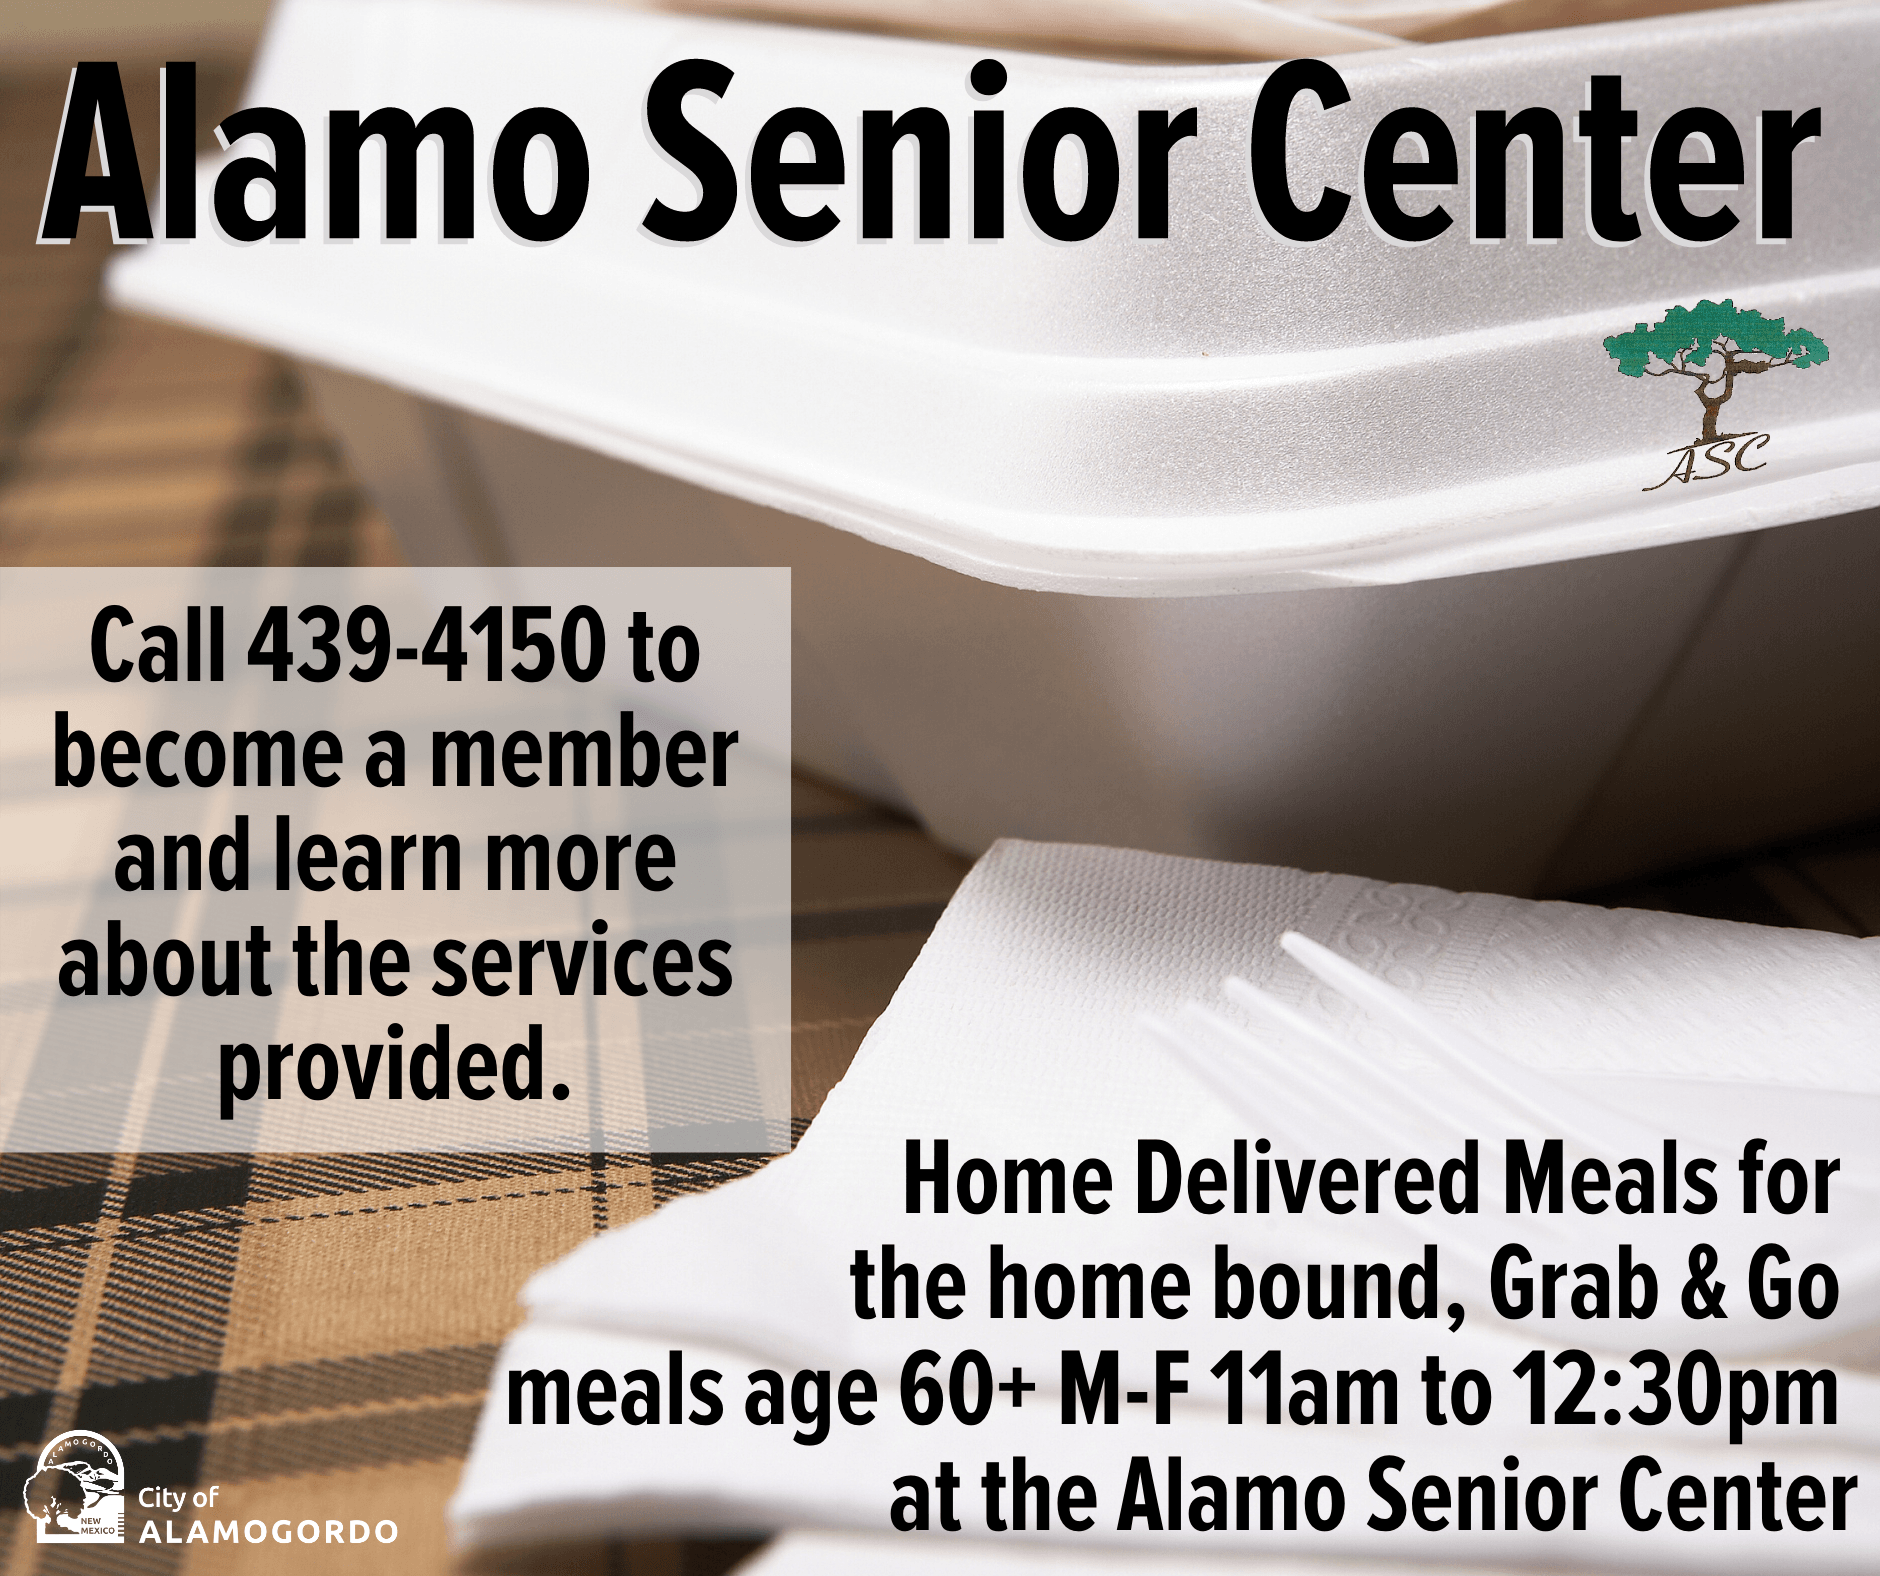 Alamo Senior Center - Grab and Go